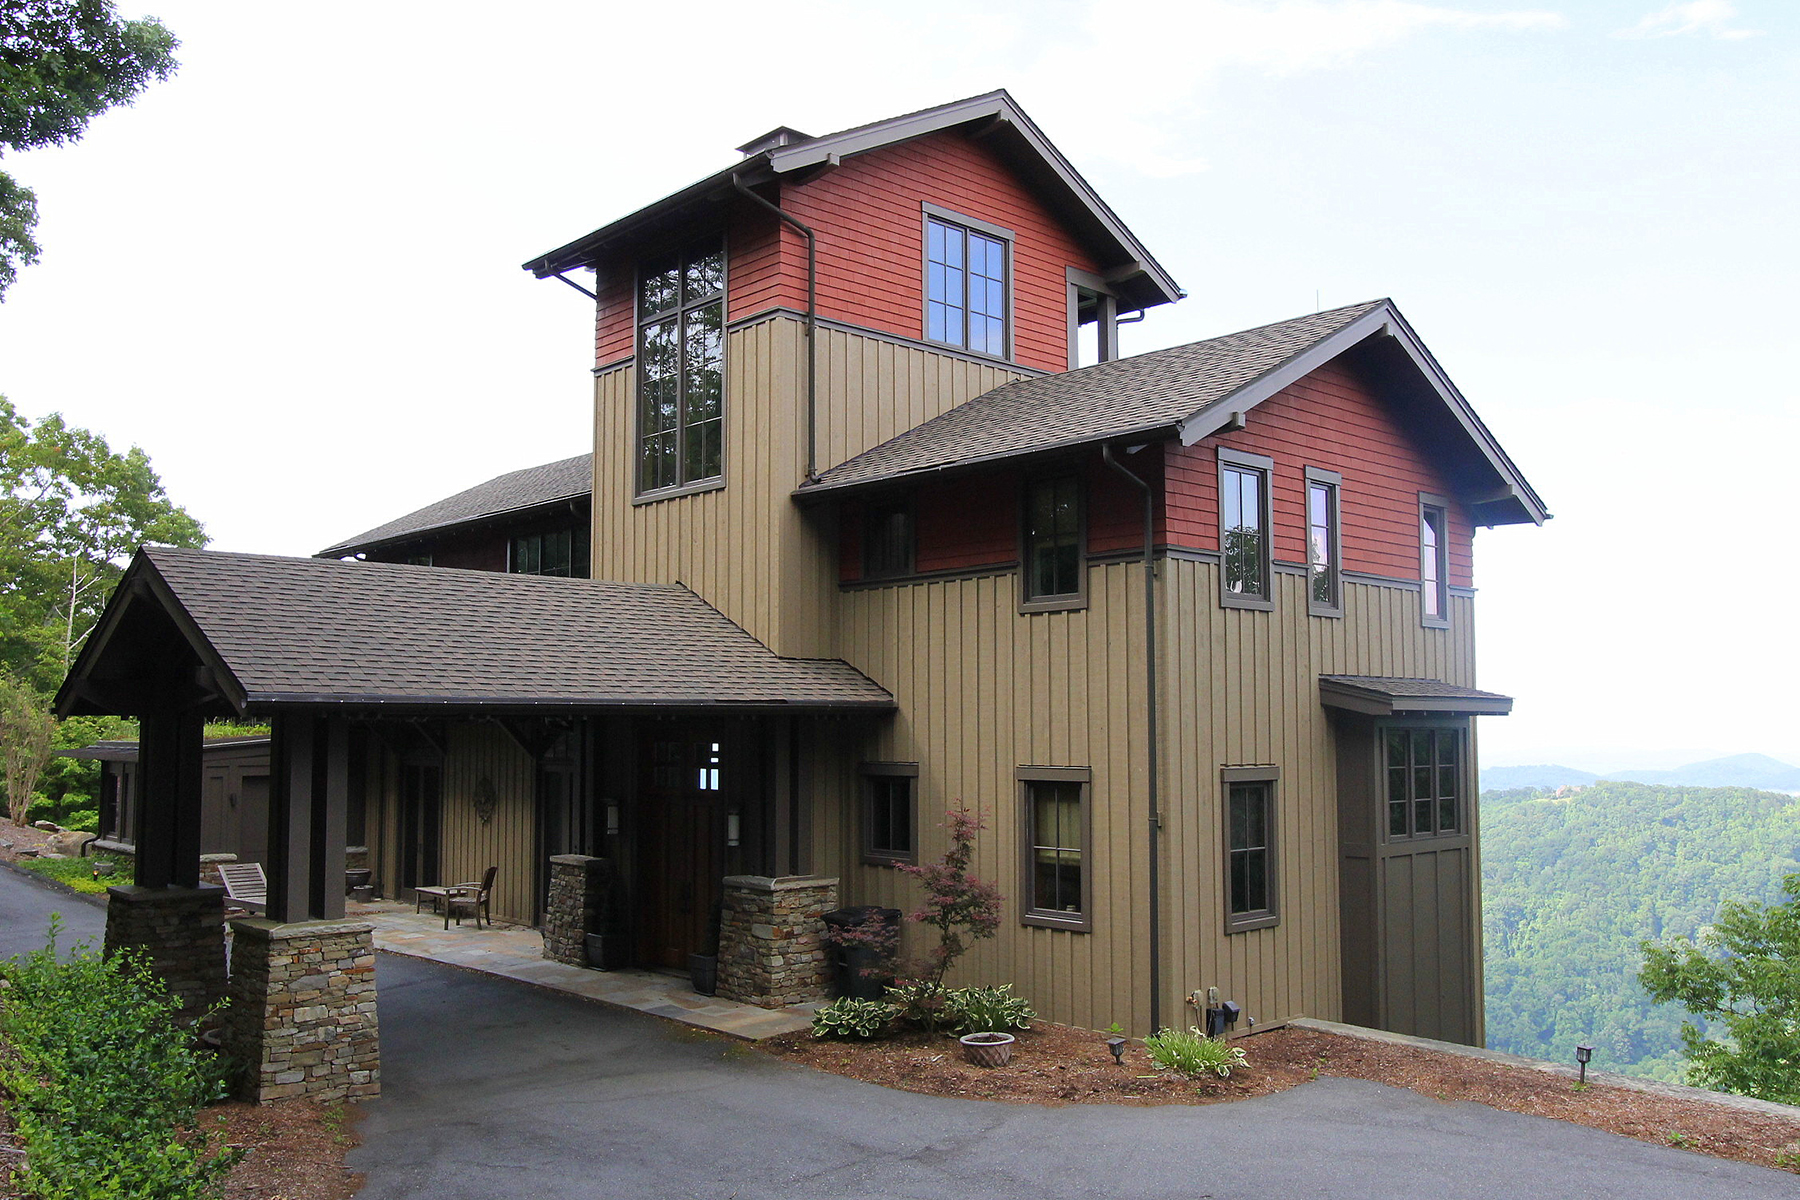 Single Family Home for Sale at BOONE - GREYSTONE IV 978 Greystone Drive Boone, North Carolina, 28607 United States